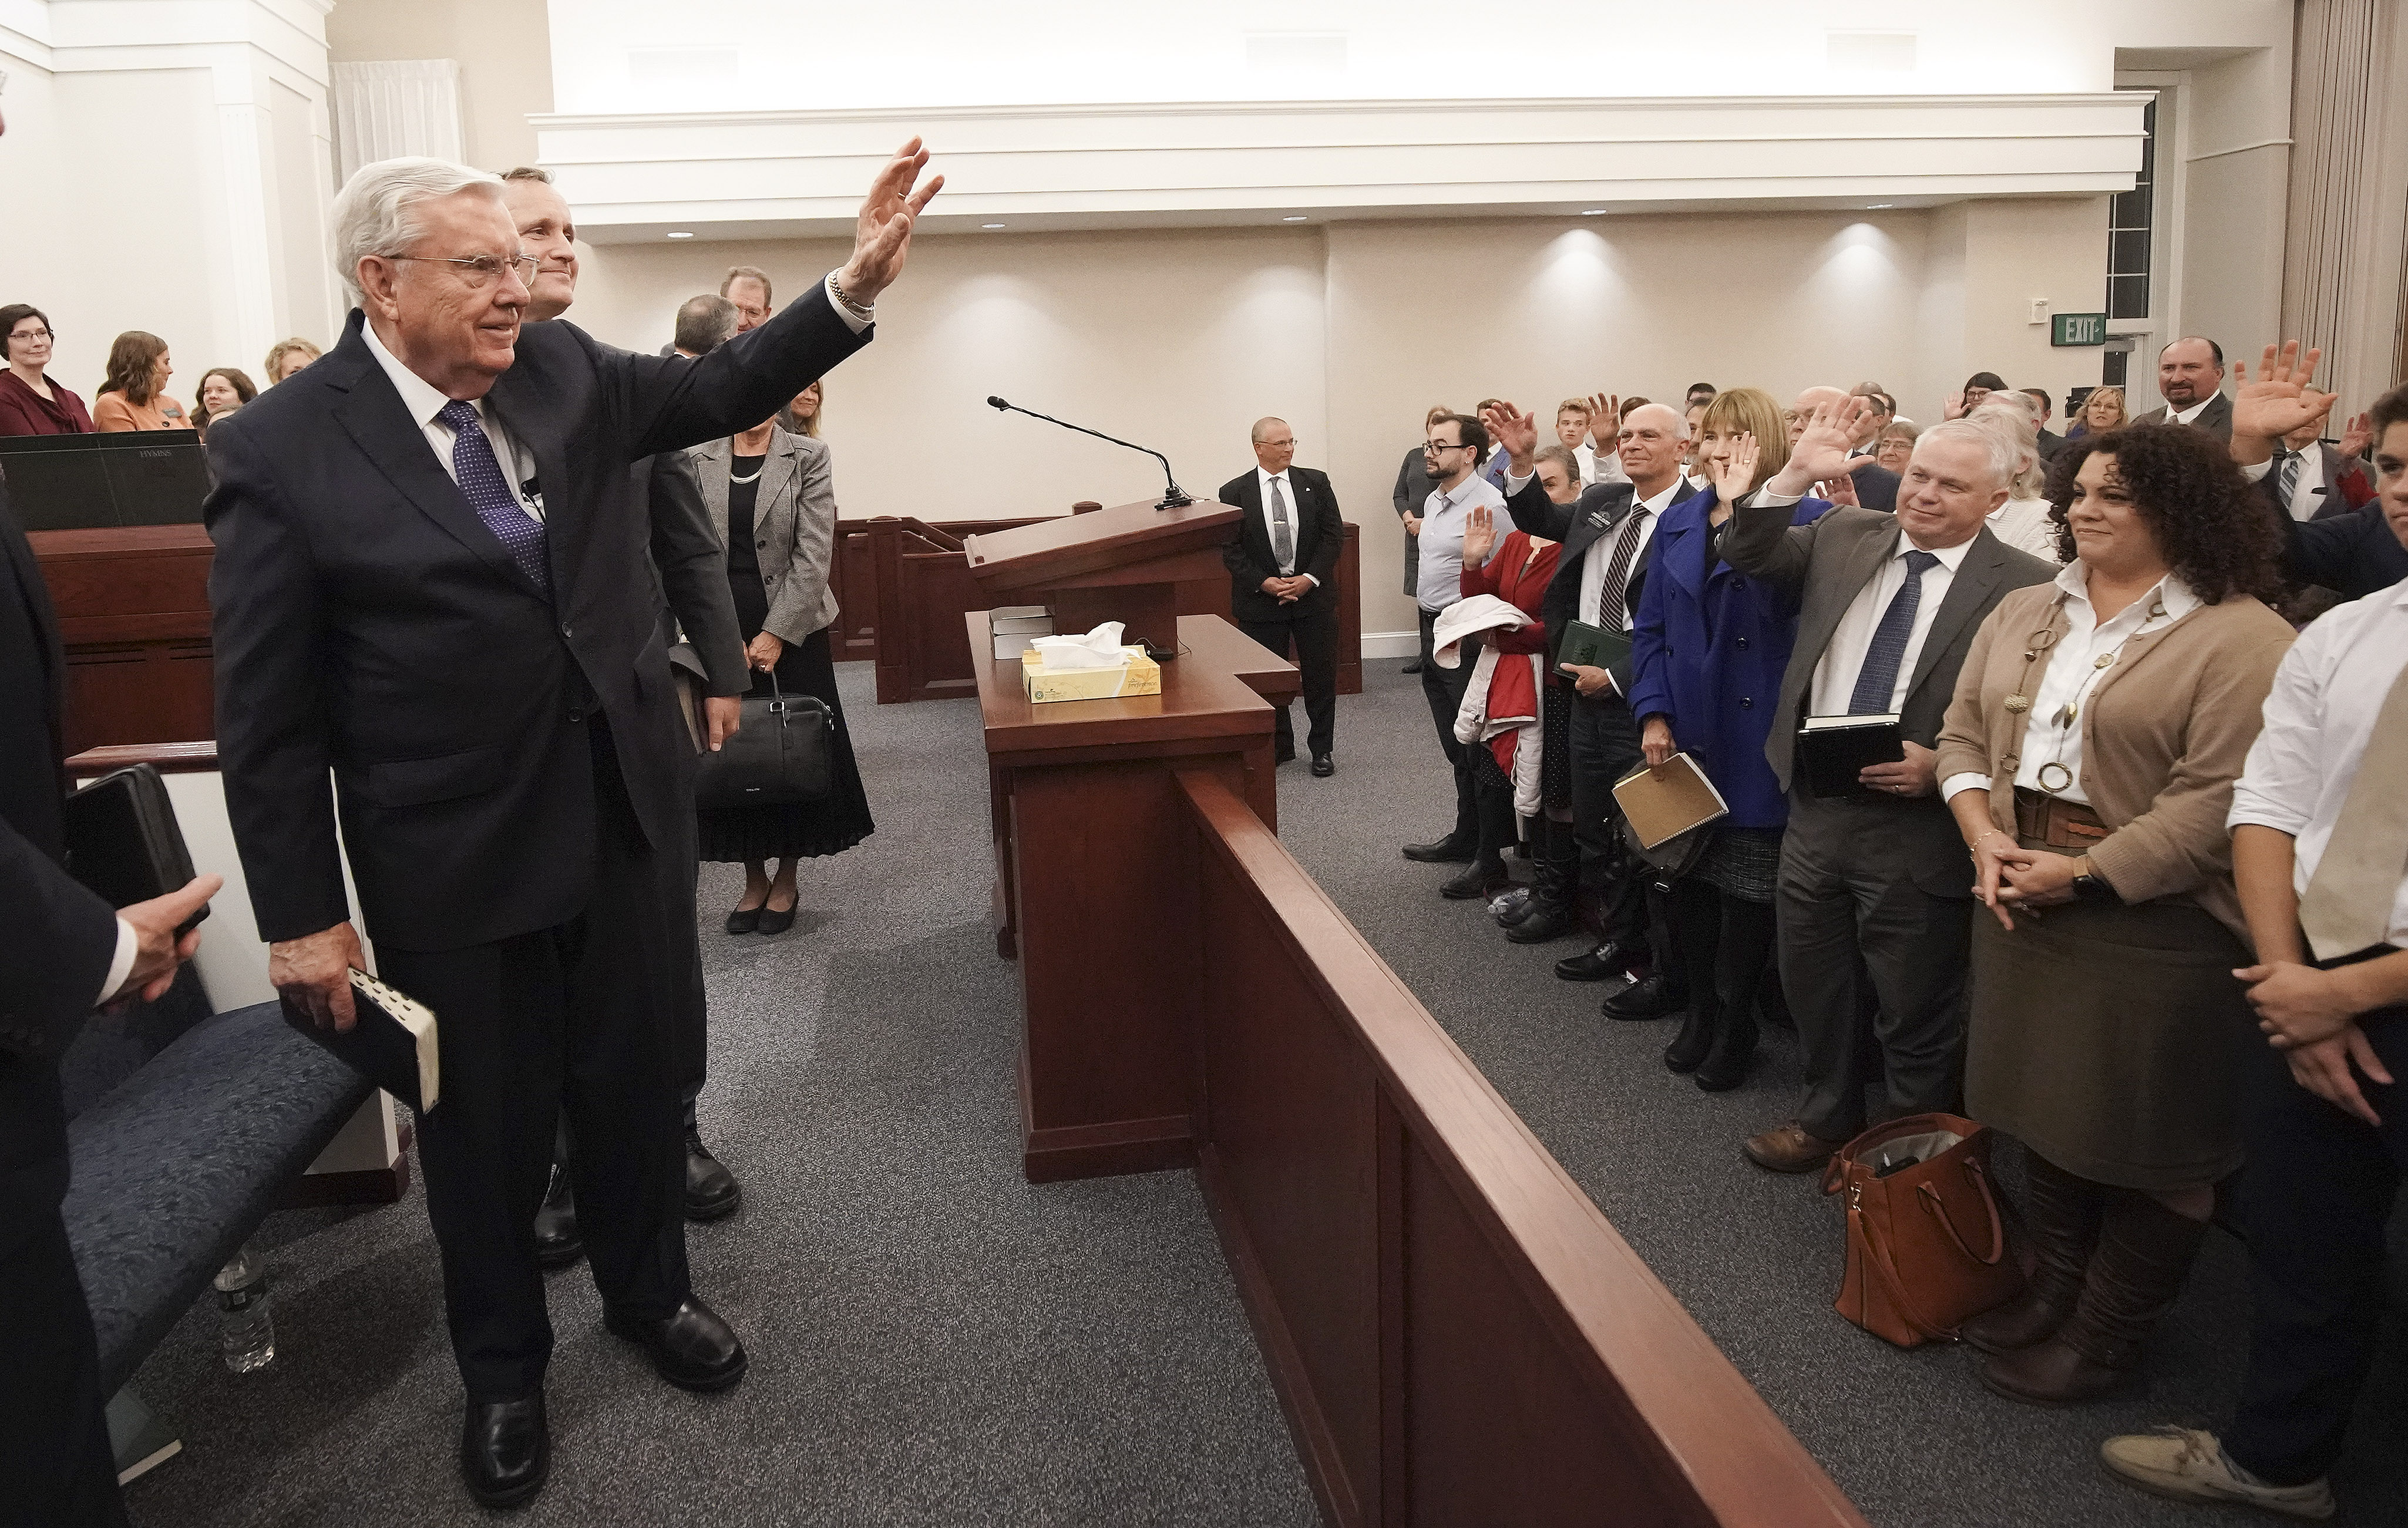 President M. Russell Ballard, acting president of the Quorum of the Twelve Apostles of The Church of Jesus Christ of Latter-day Saints, waves to attendees after a member meeting in South Royalton, Vt. on Friday, Oct. 18, 2019.